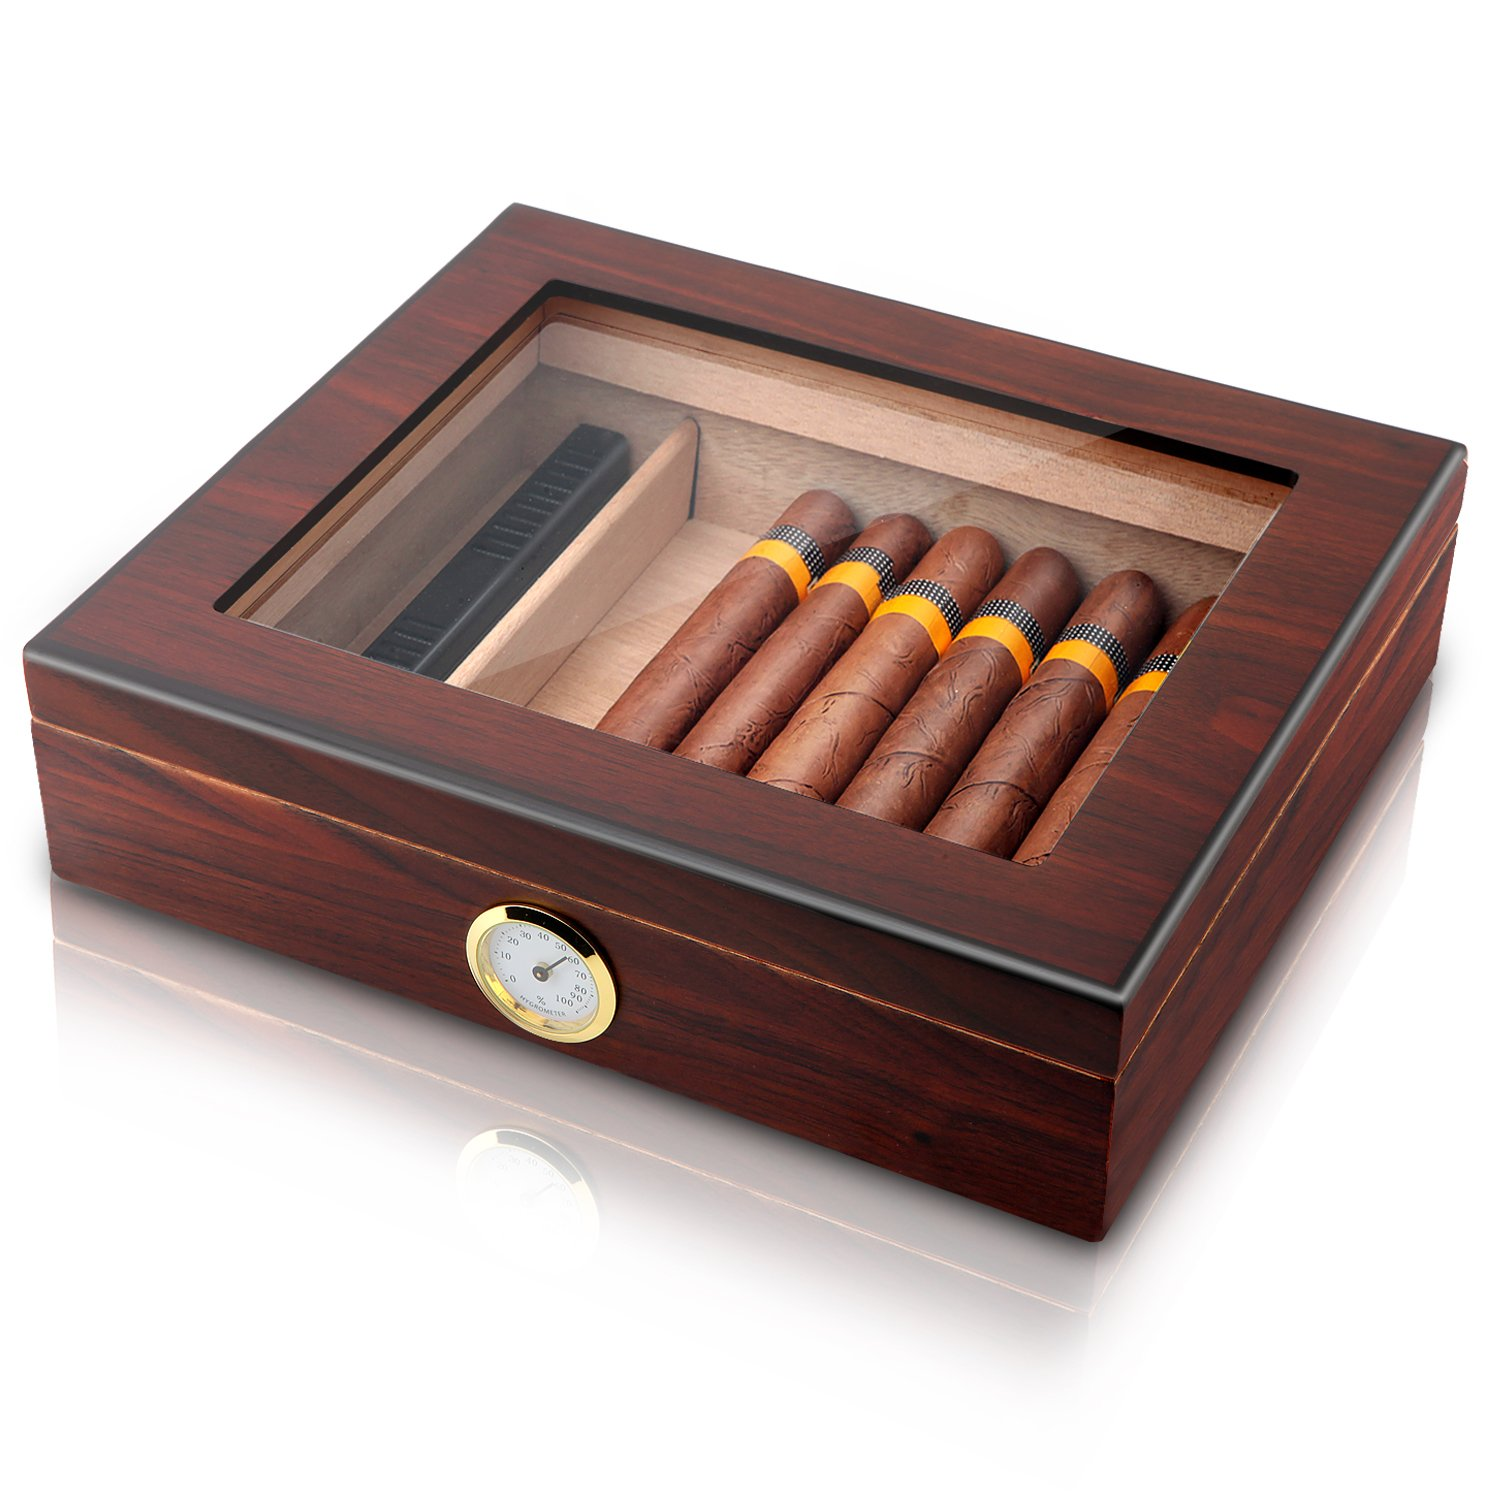 Handmade Cigar Humidor, Cedar Cigar Desktop Box with Humidifier and Hygrometer, Glass Top for 25 Cigars (20-25 Cigars)